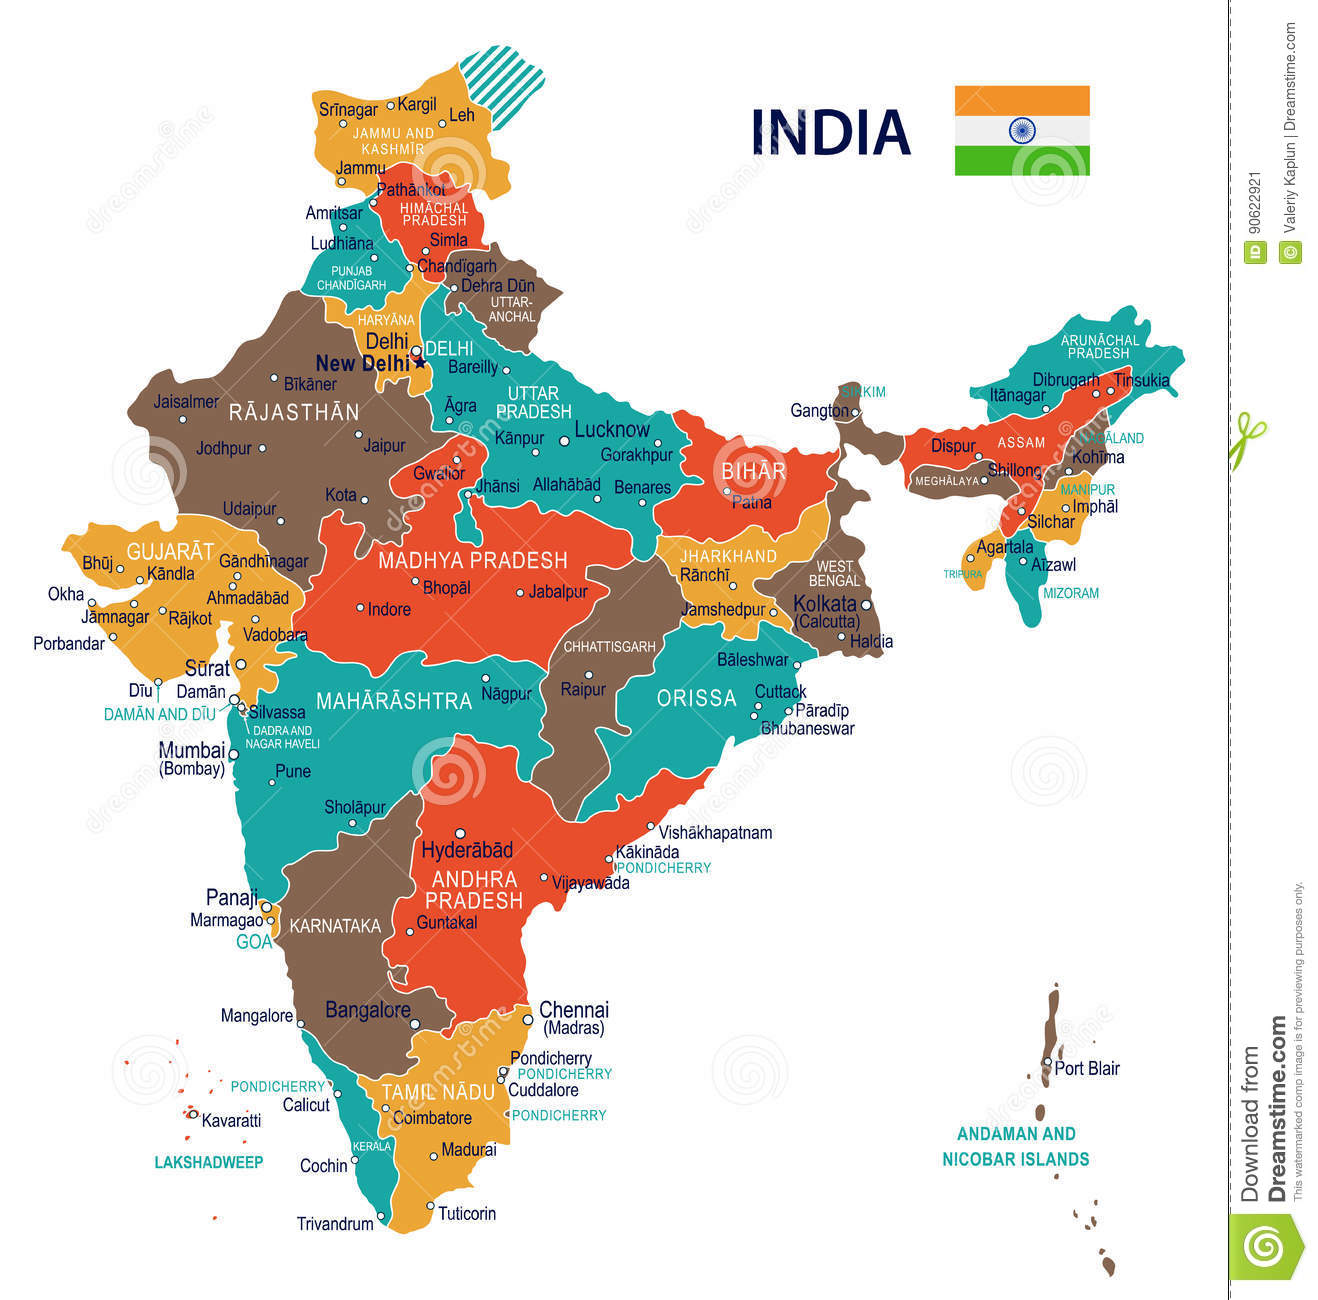 Where Is Hyderabad Located In India Map.India Map And Flag Illustration Stock Illustration